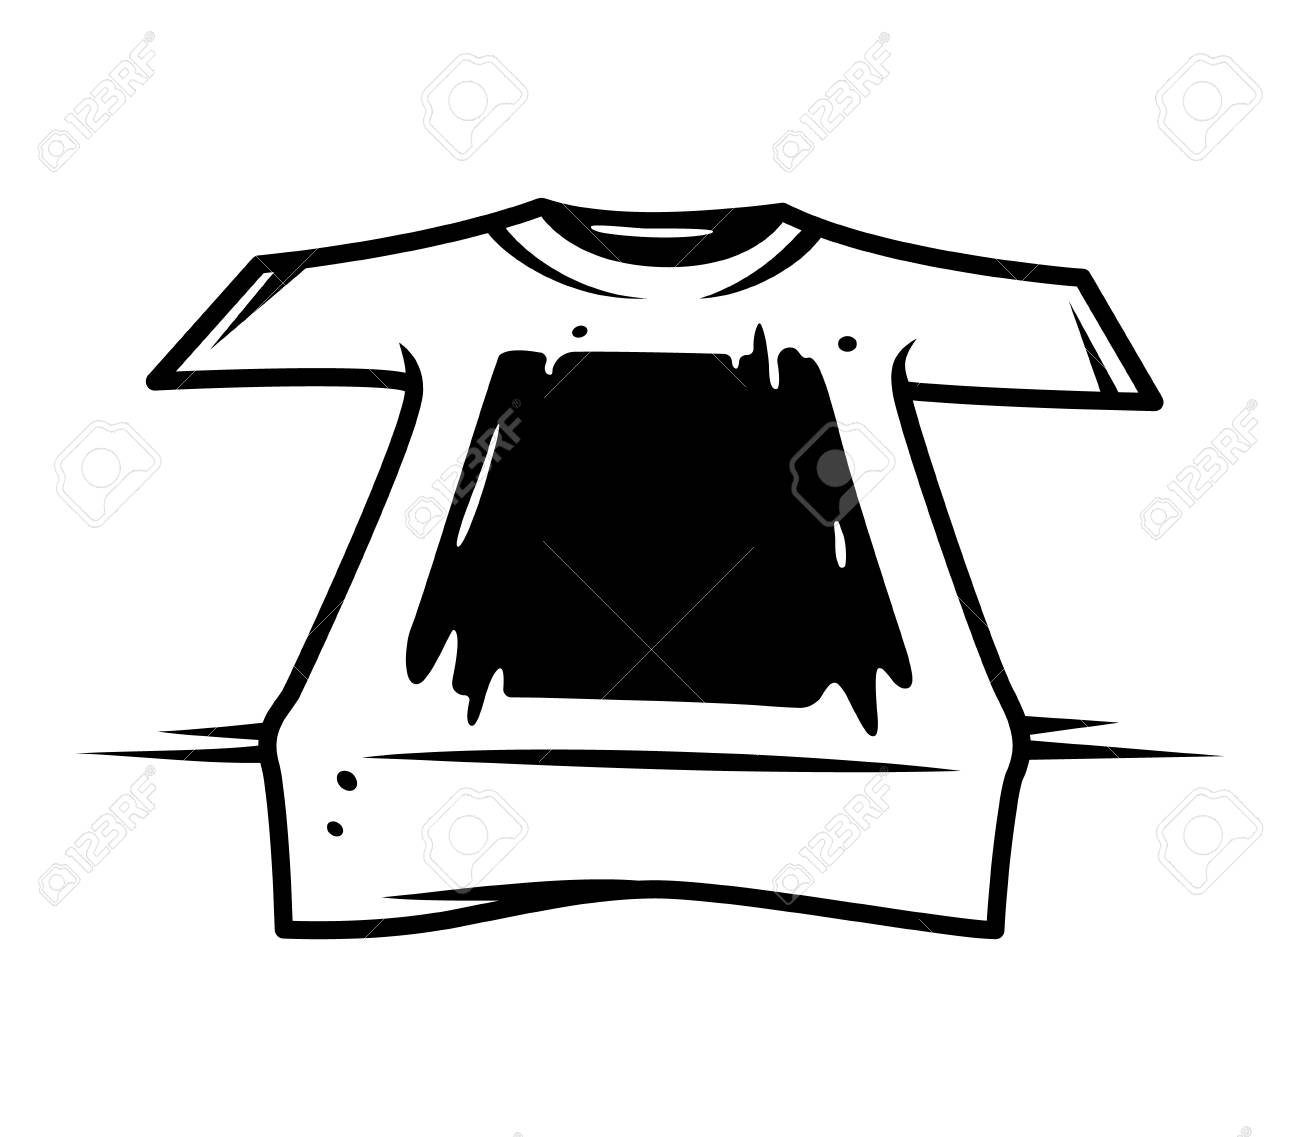 Vintage screen printing monochrome concept with - 109849439